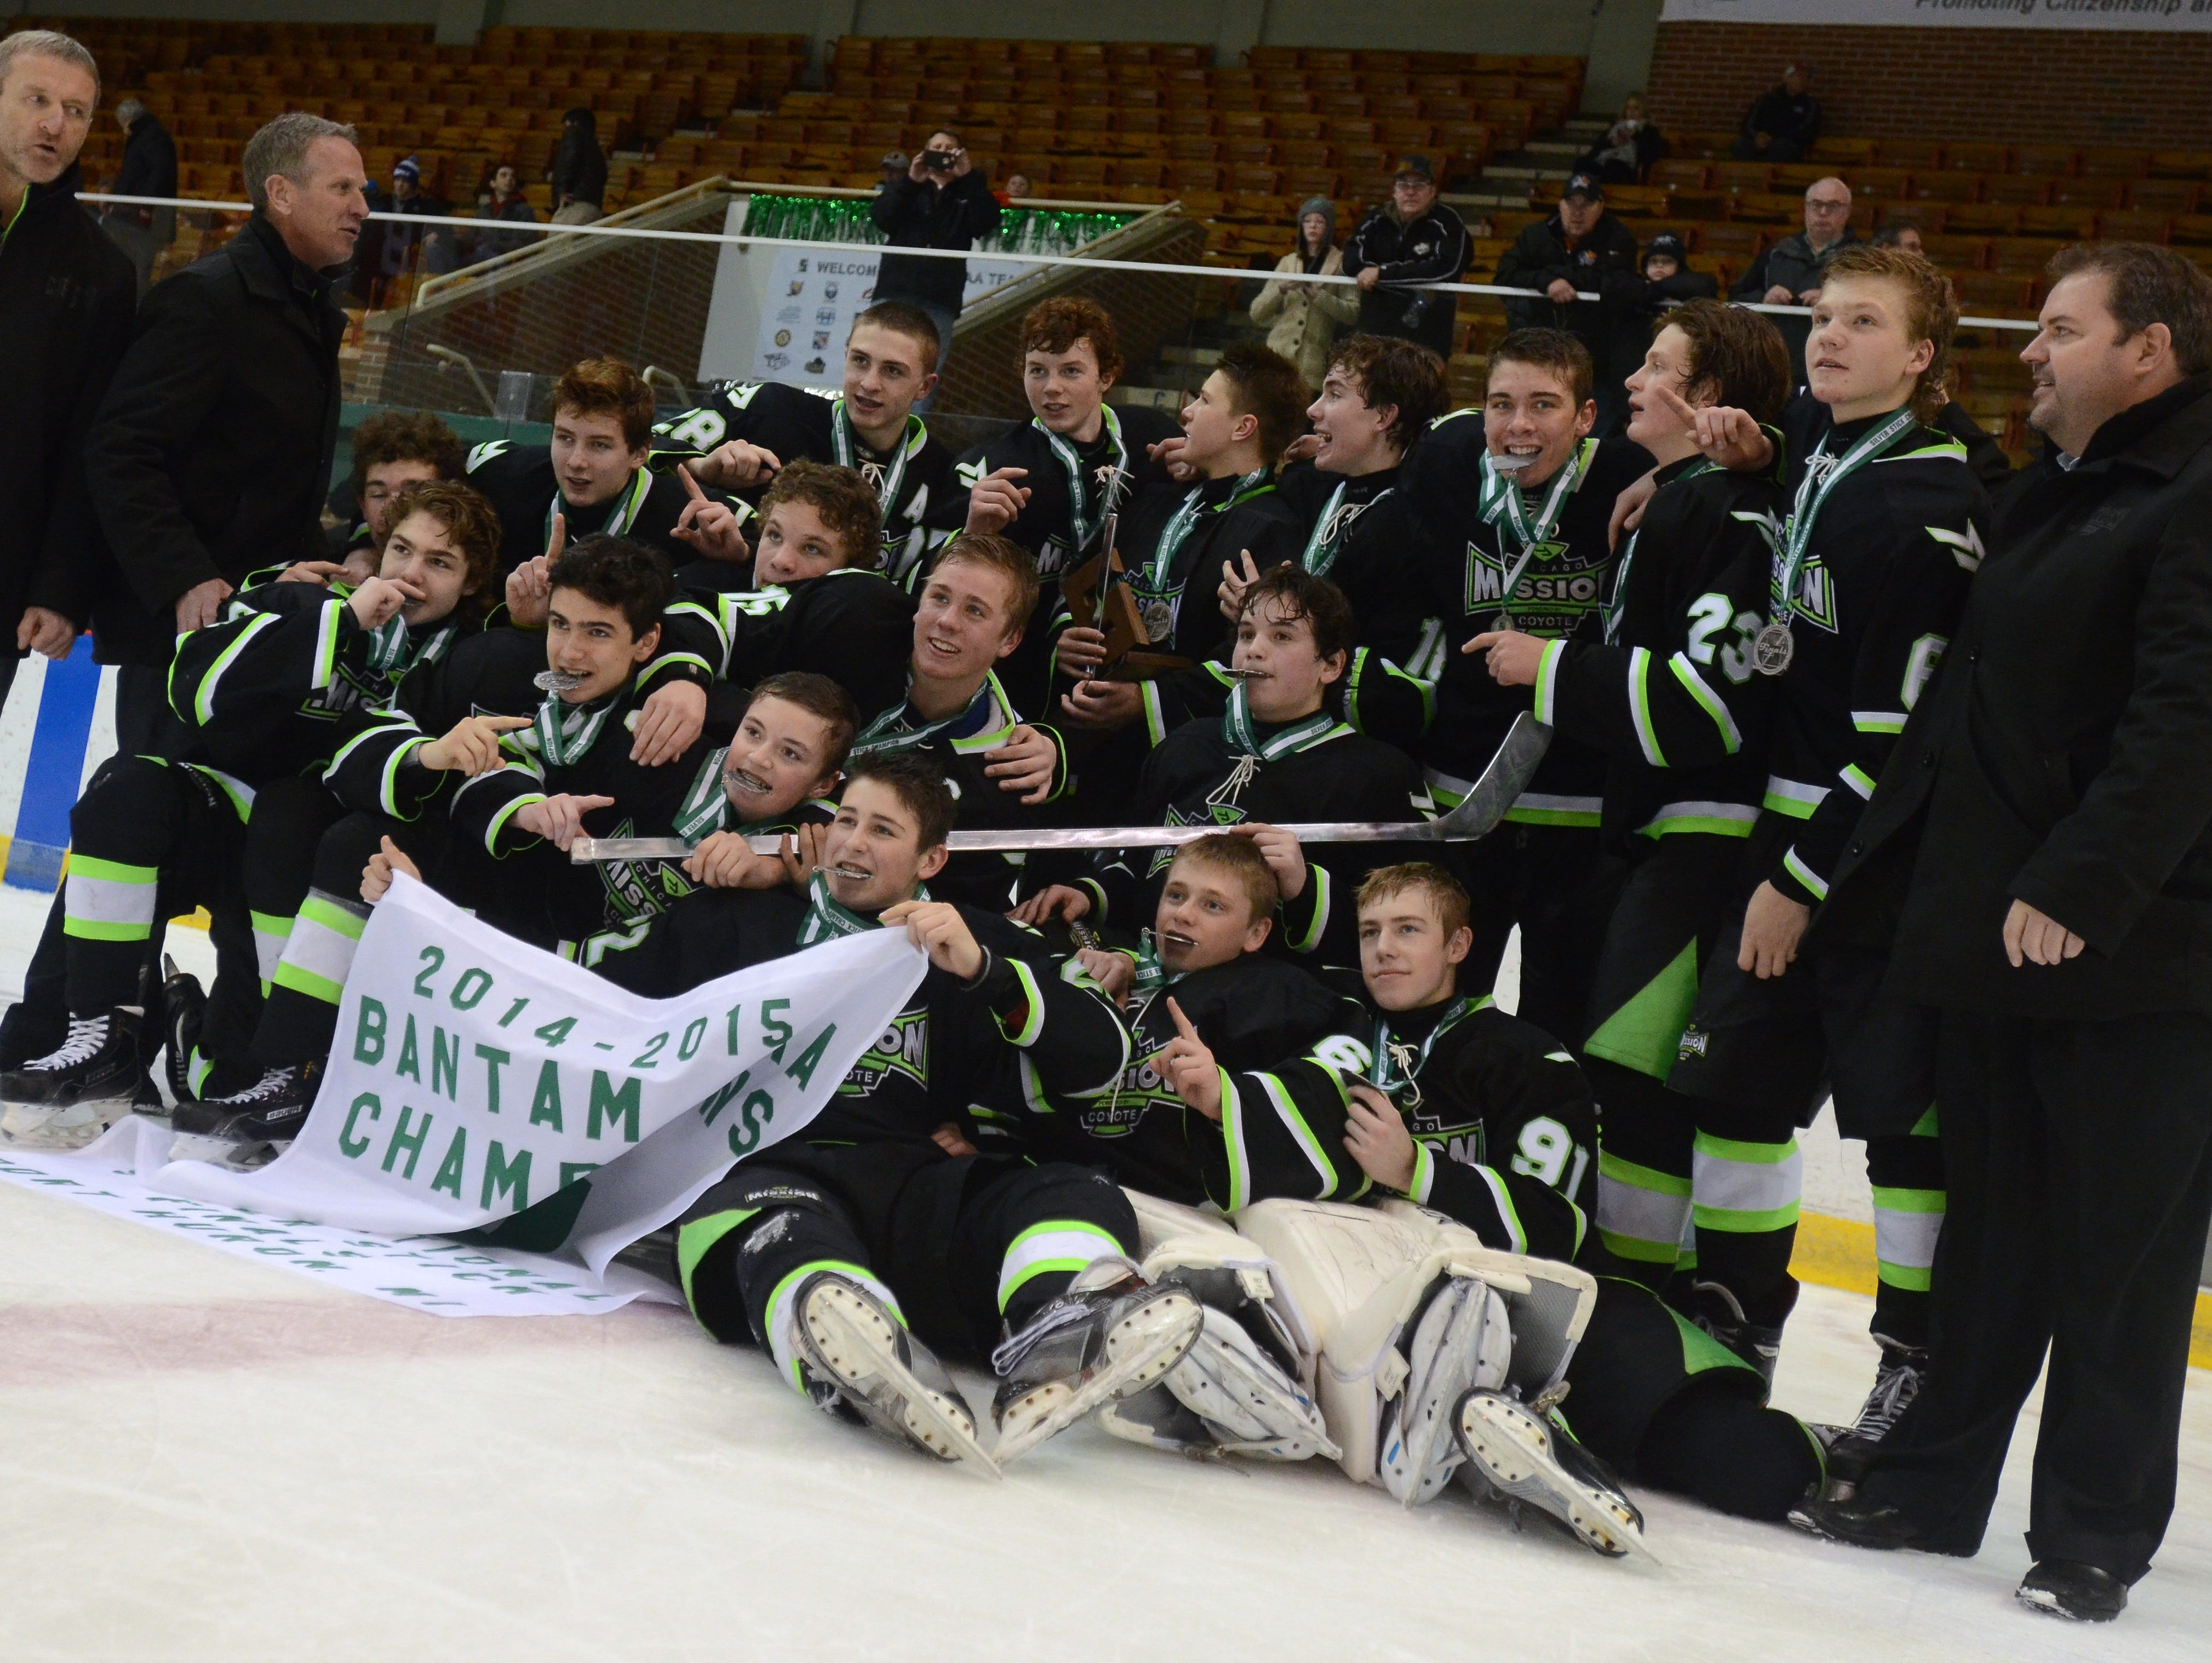 Members of the Chicago Mission celebrate Sunday, Jan 11 after winning the Bantam AAA Silver Stick Finals championship game.